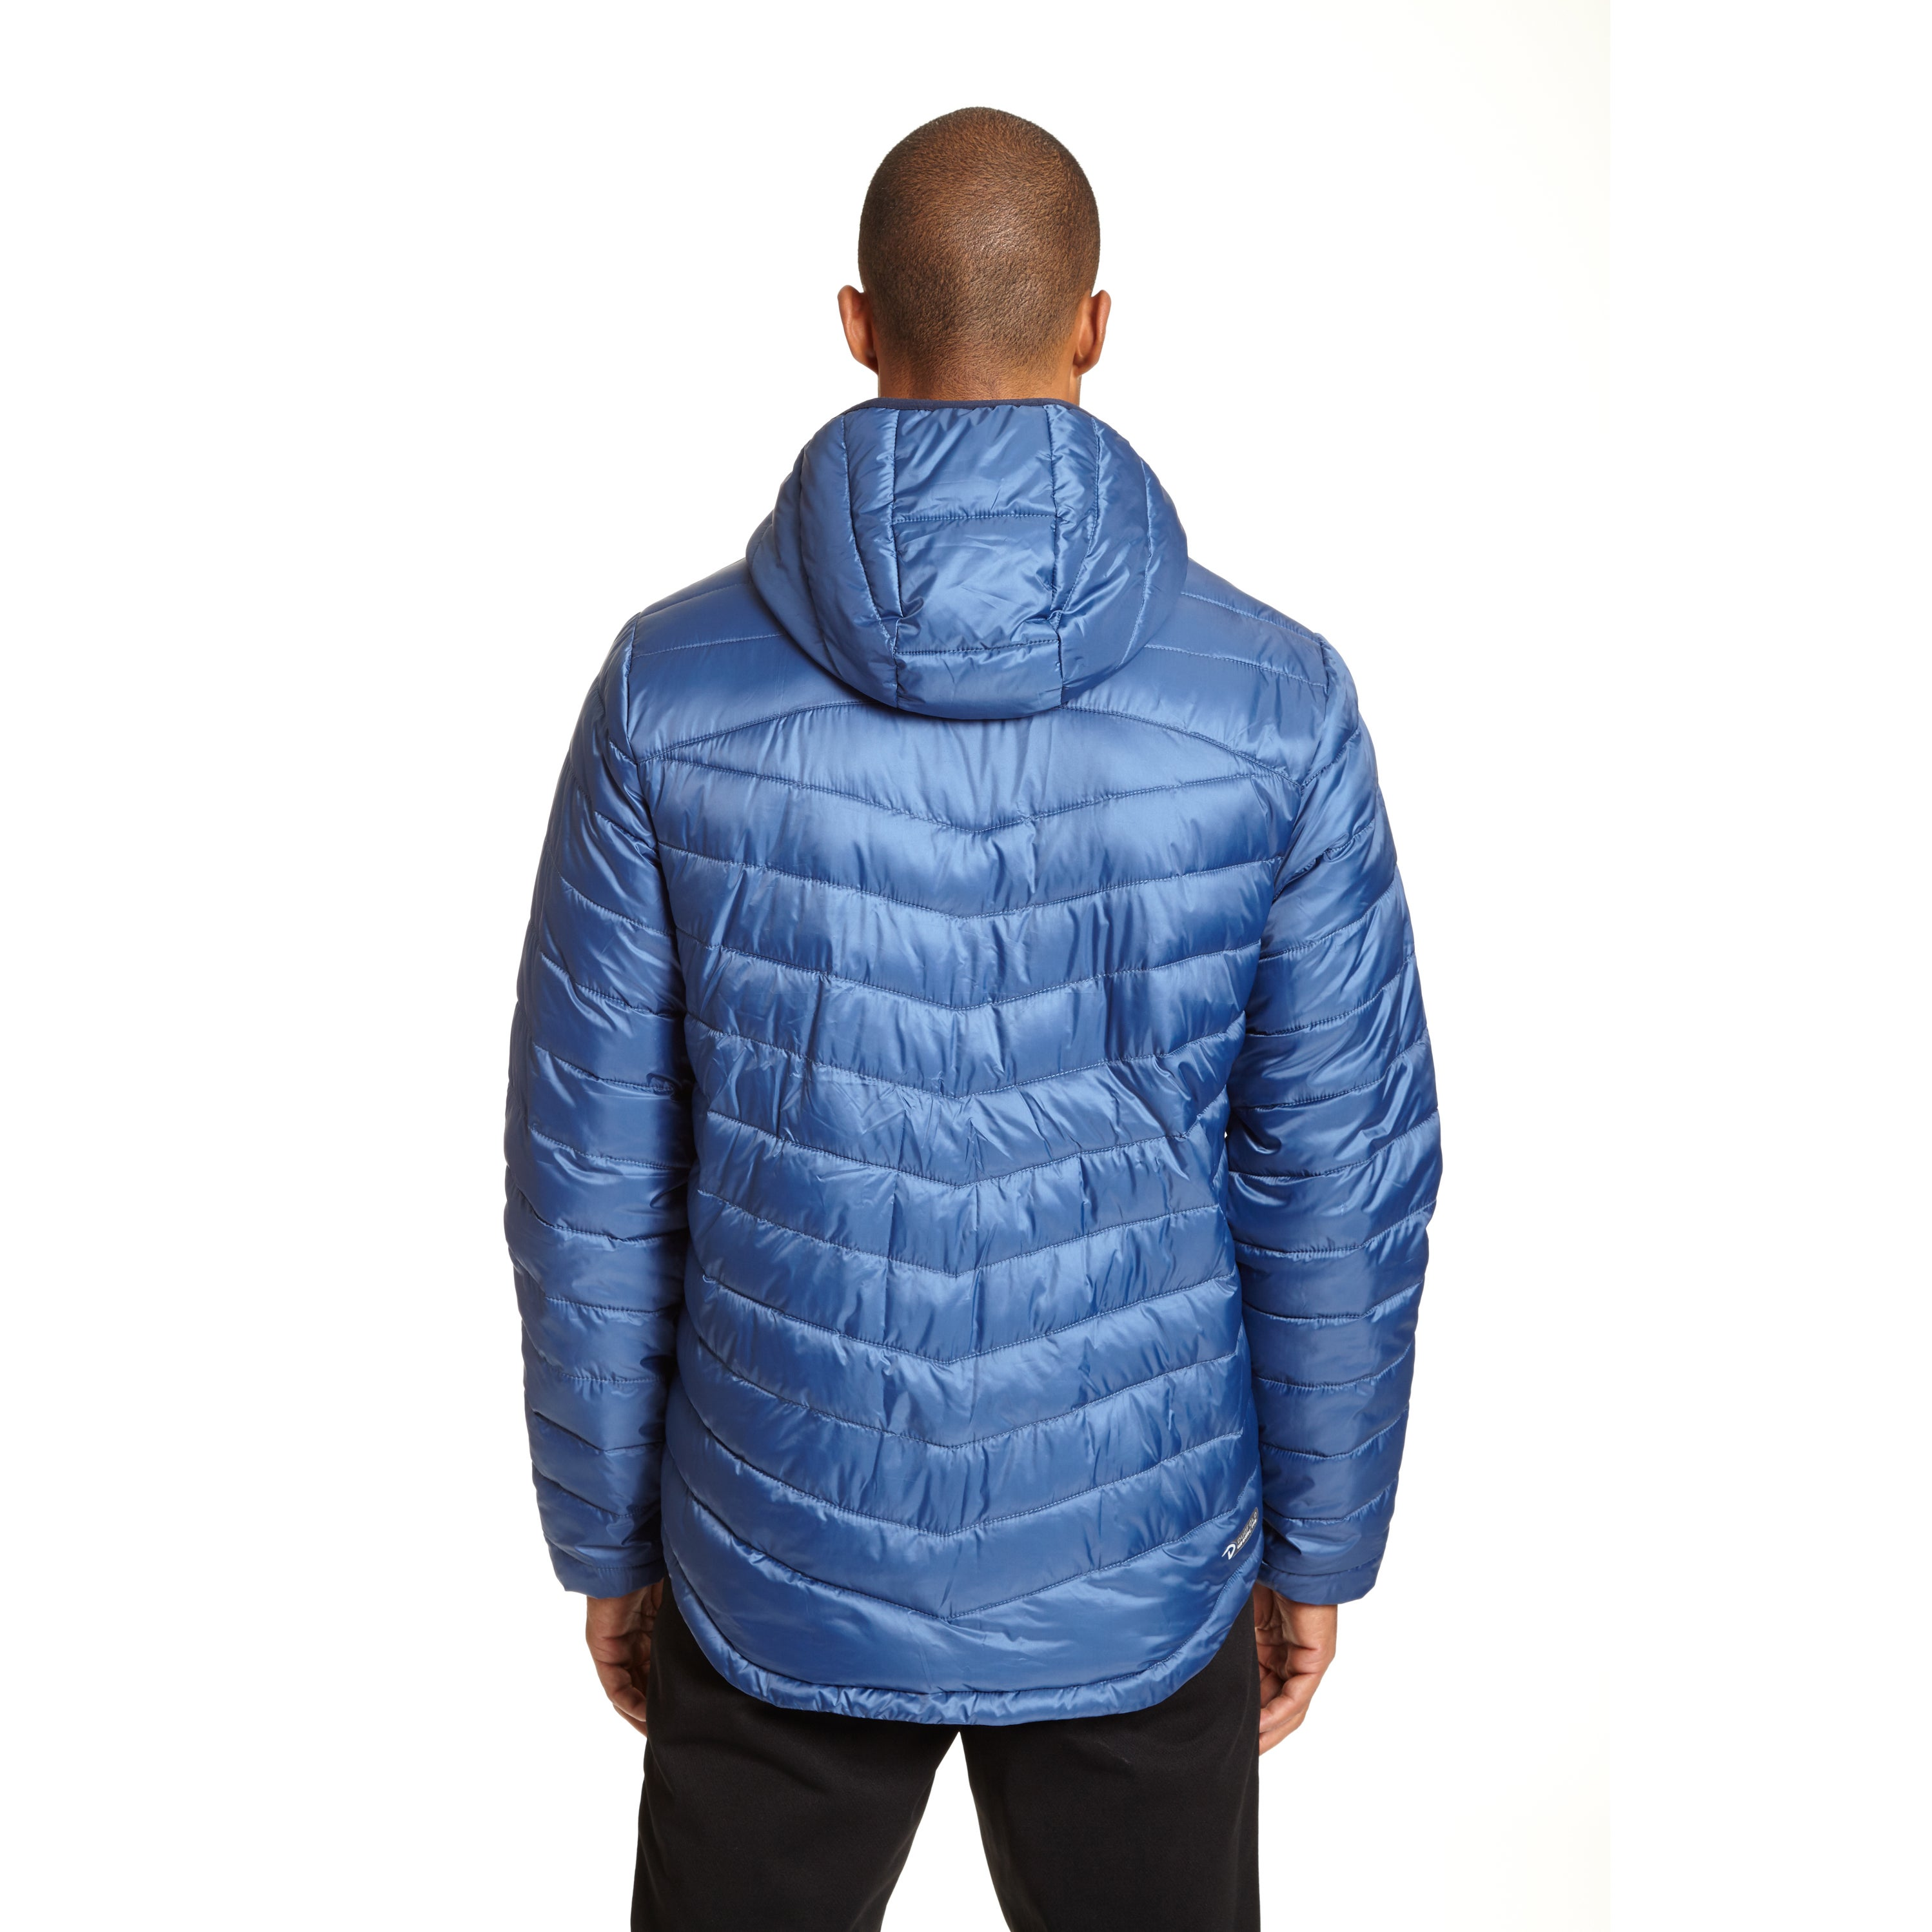 7ff332c6a441 Shop Champion Men s Featherweight Insulated Packable Jacket - Free Shipping  Today - Overstock - 12376994